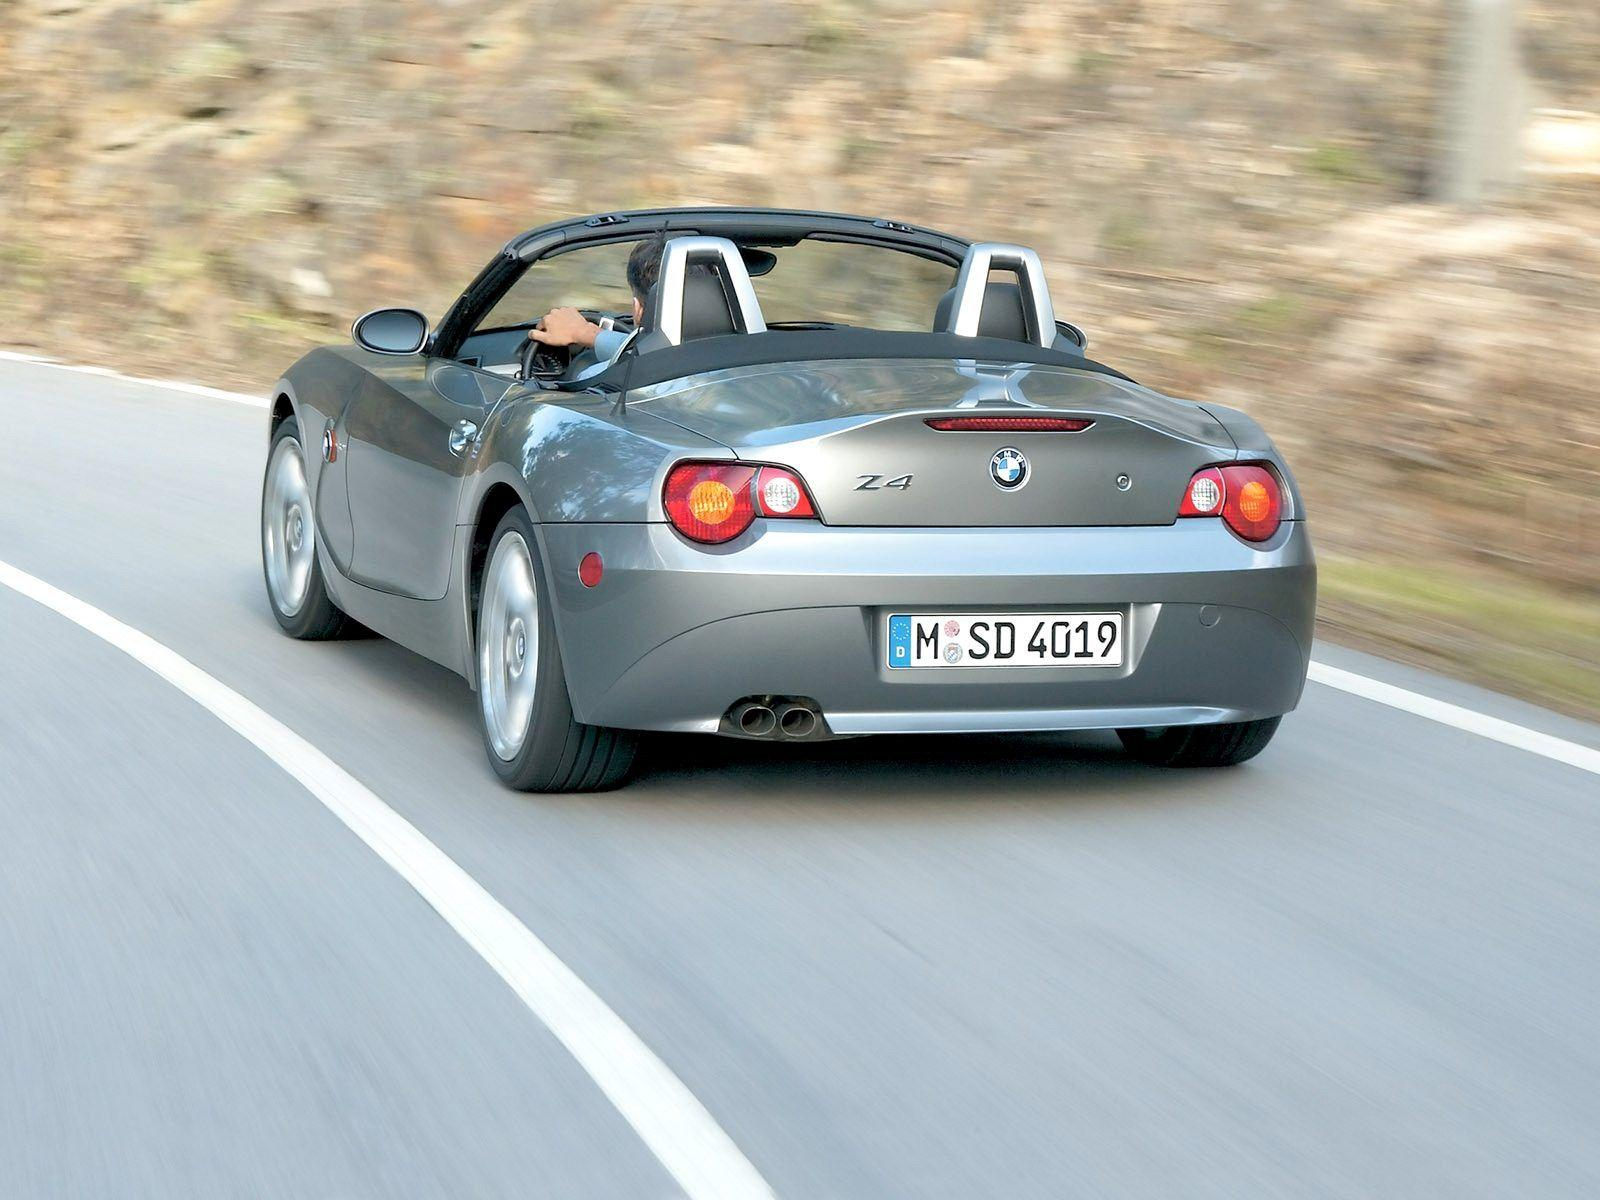 BMW Z4 Roadster Wallpaper 06 - 1600x1200